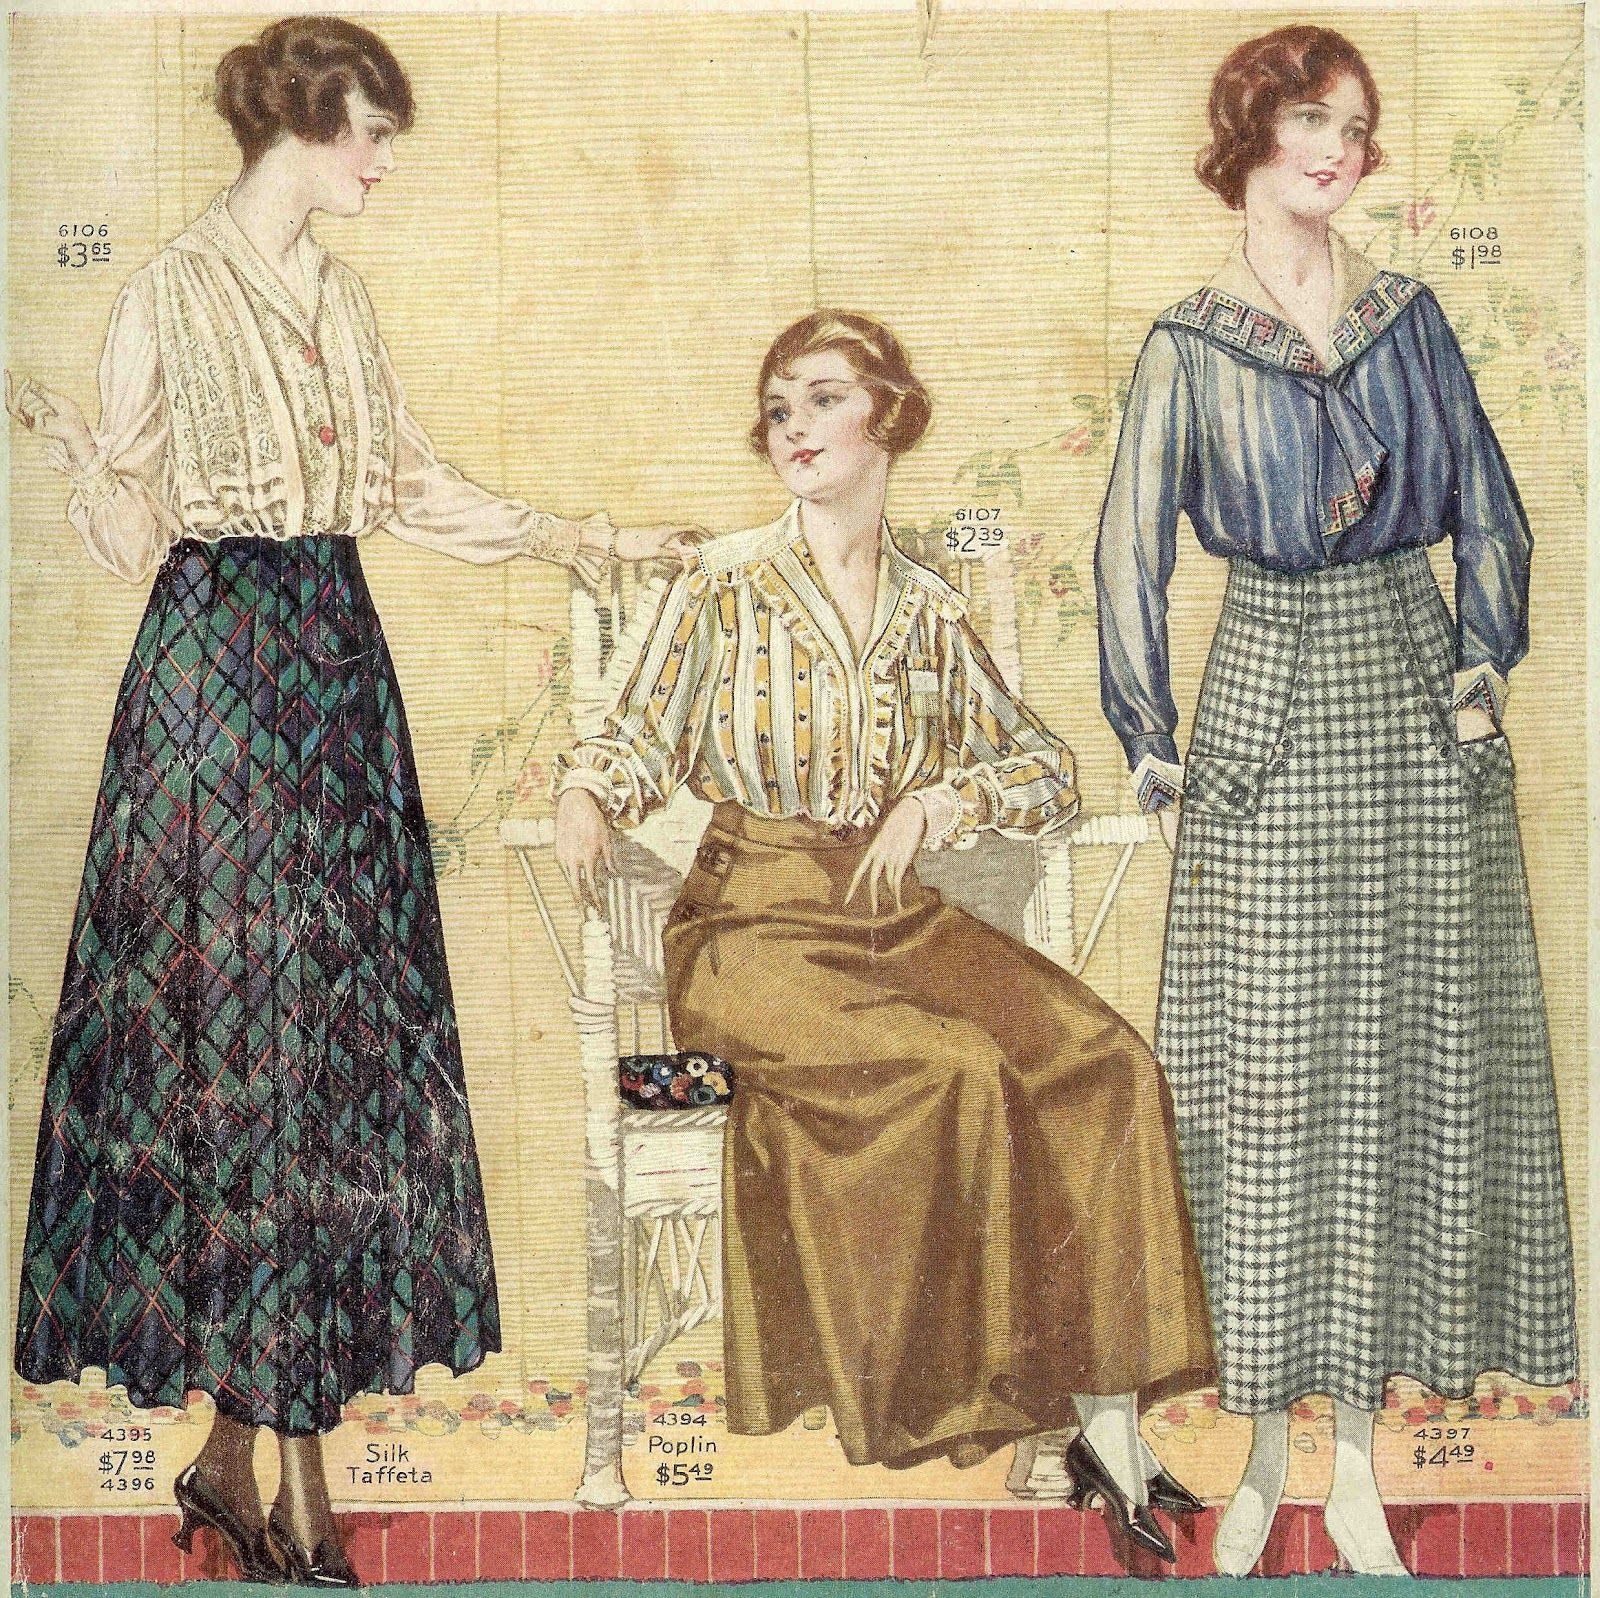 Antique Images: Vintage Fashion Graphic: Women's Vintage Fashion.